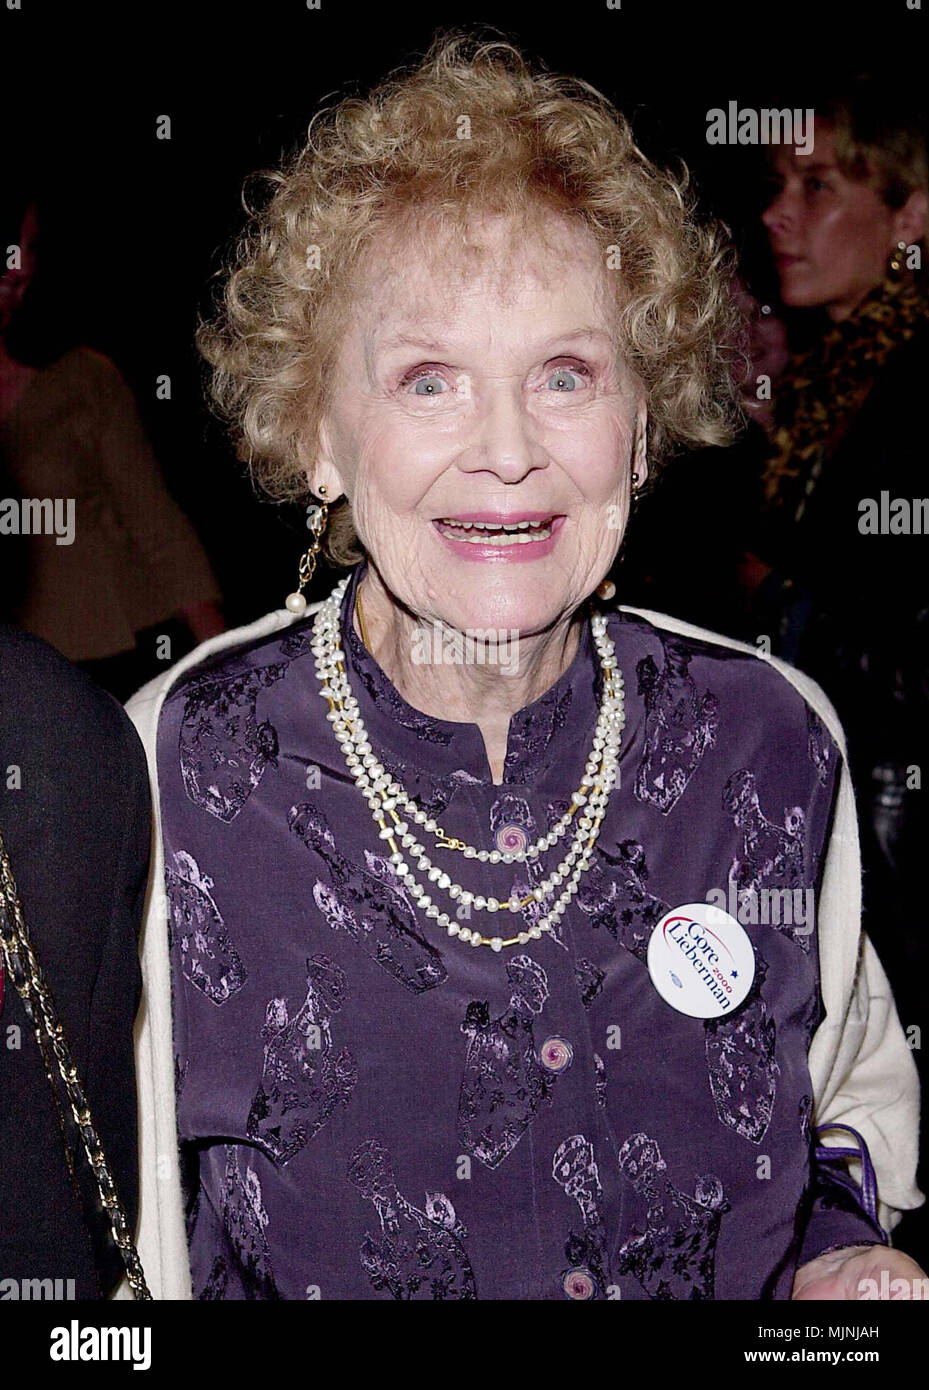 24 Oct 2000, Los Angeles, California, USA --- Original caption: Lucky Number Premiere was on the Paramount lot, in Los Angeles. --- ' Tsuni / - 'Gloria Stuart 278 Gloria Stuart 278 - Stock Image